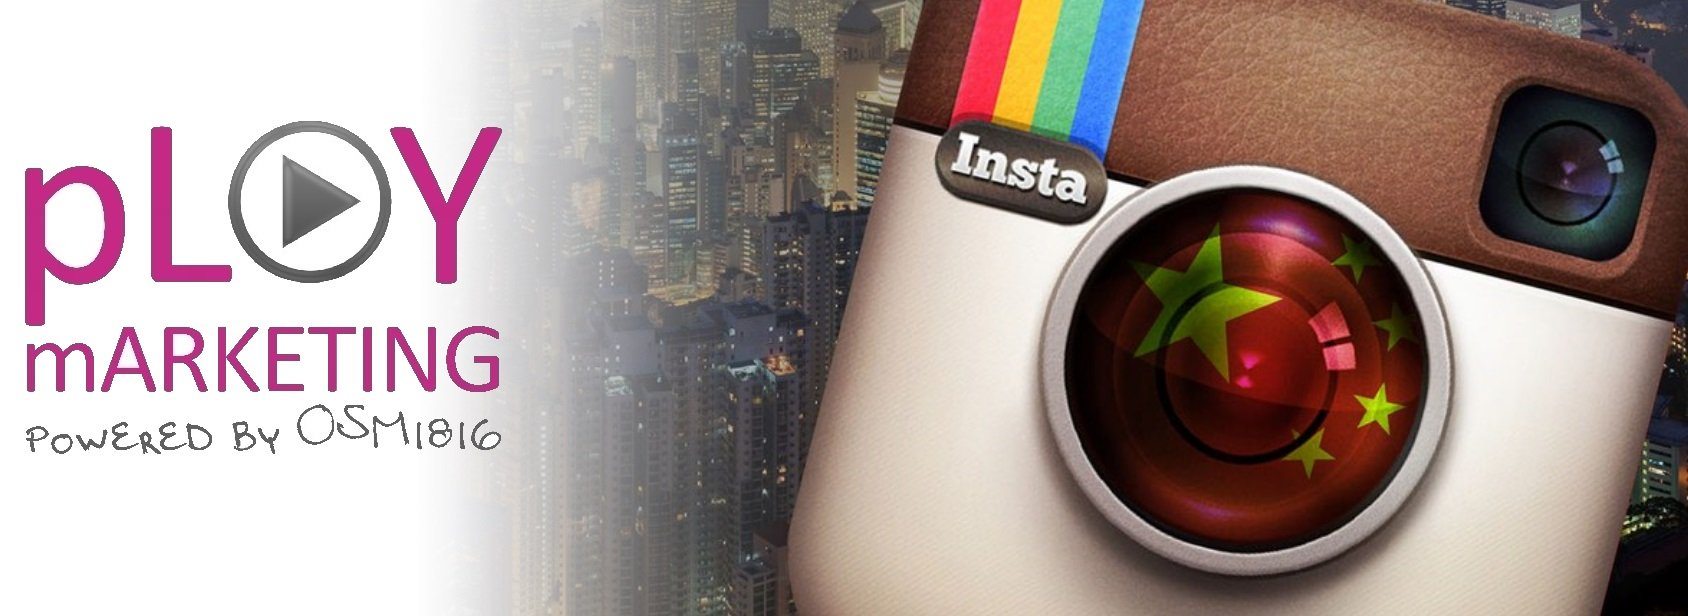 Instagram sbarca in Cina?